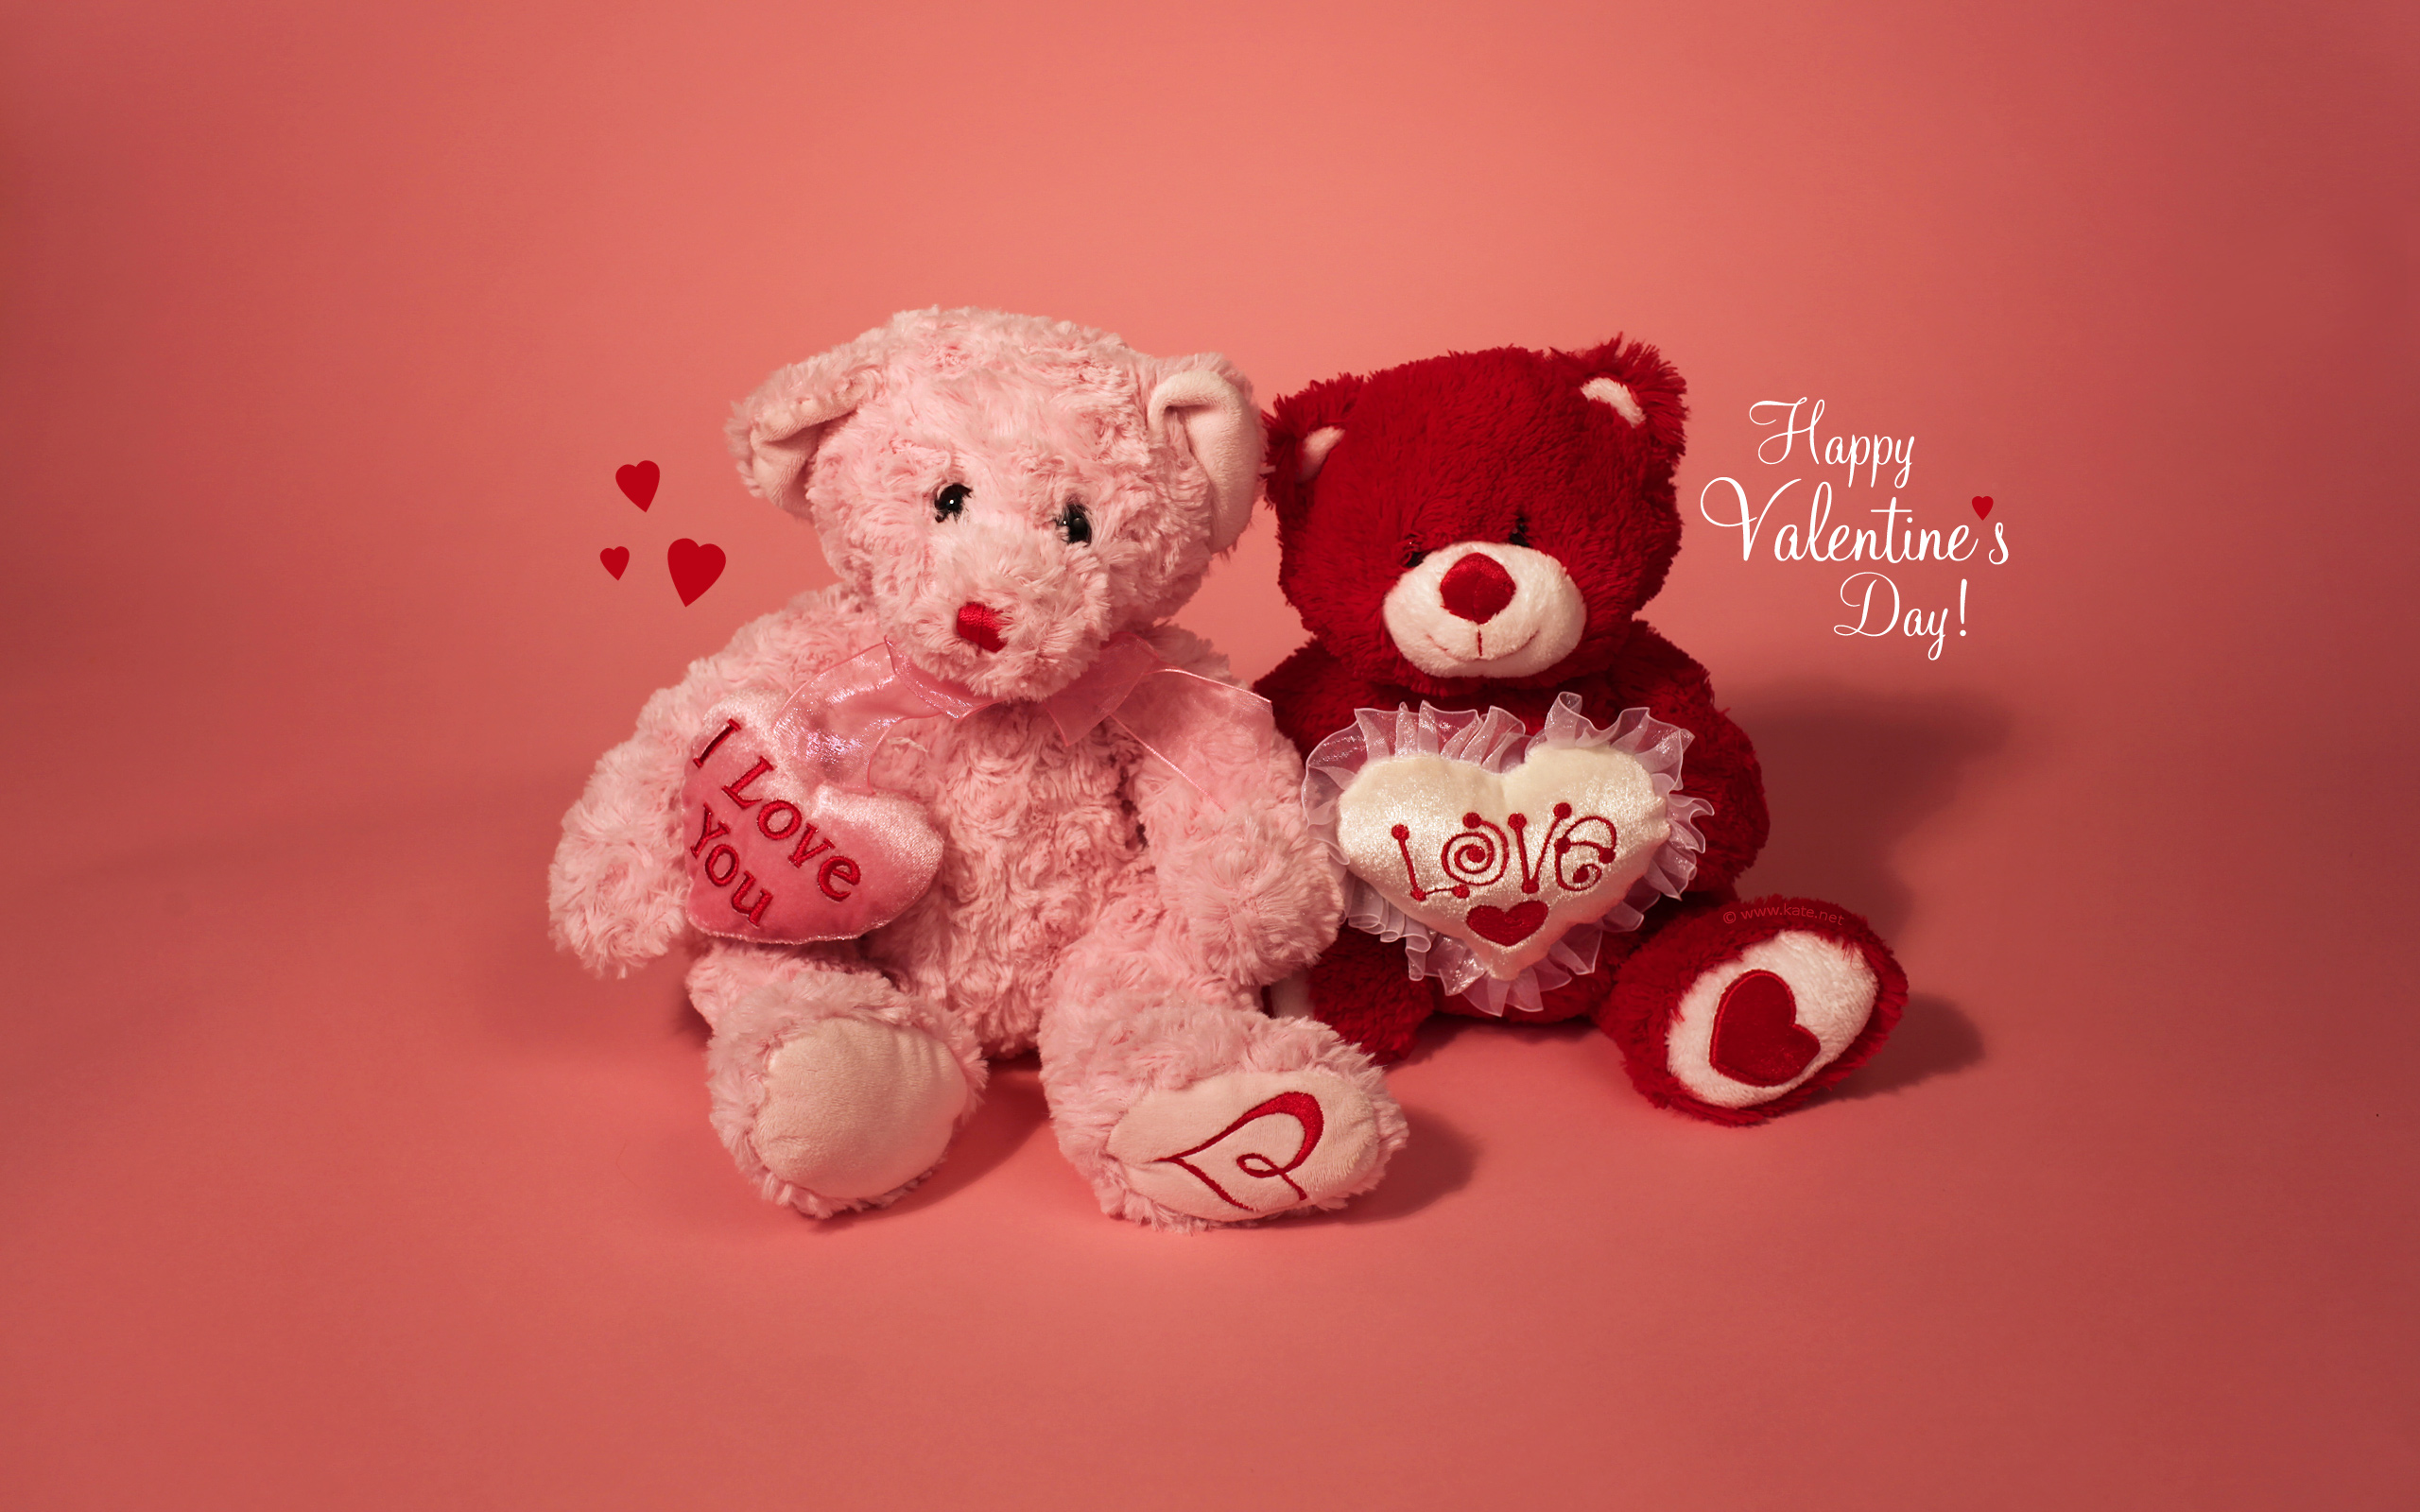 Happy Valentines Day 2016 Images   Happy Birthday Cake Images 2560x1600